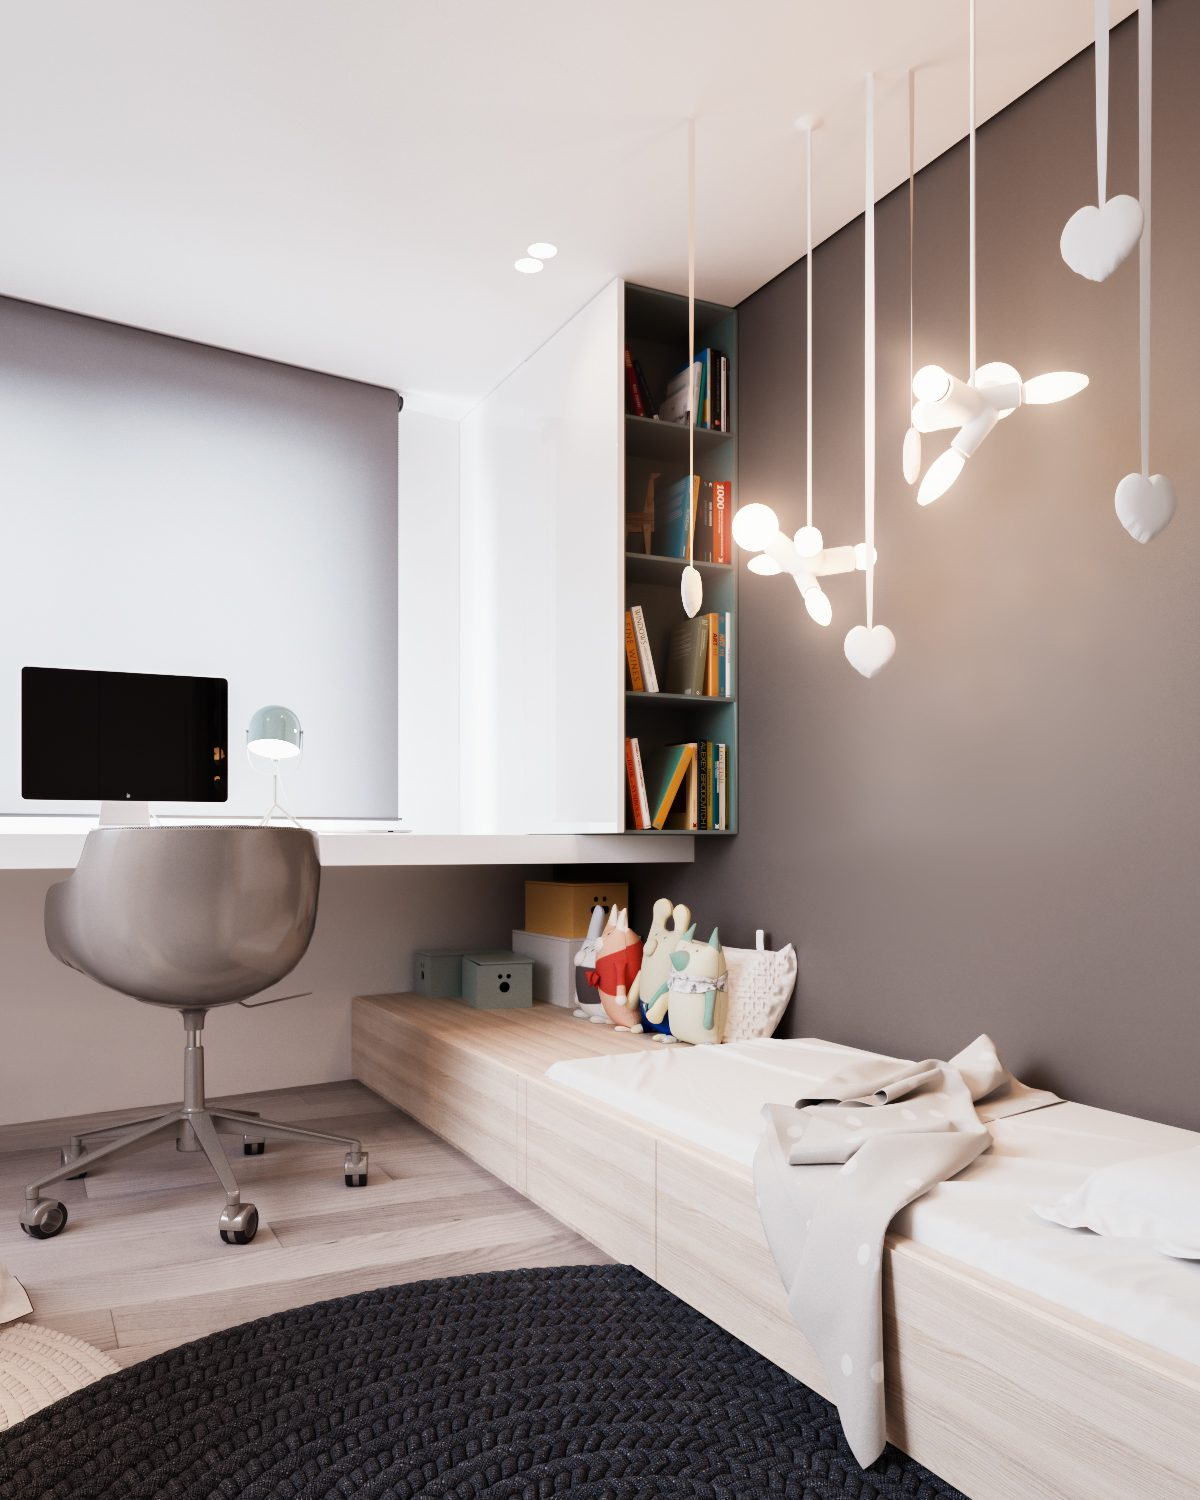 Creative Kids Lighting Ideas - A calm and simple family home with neat features